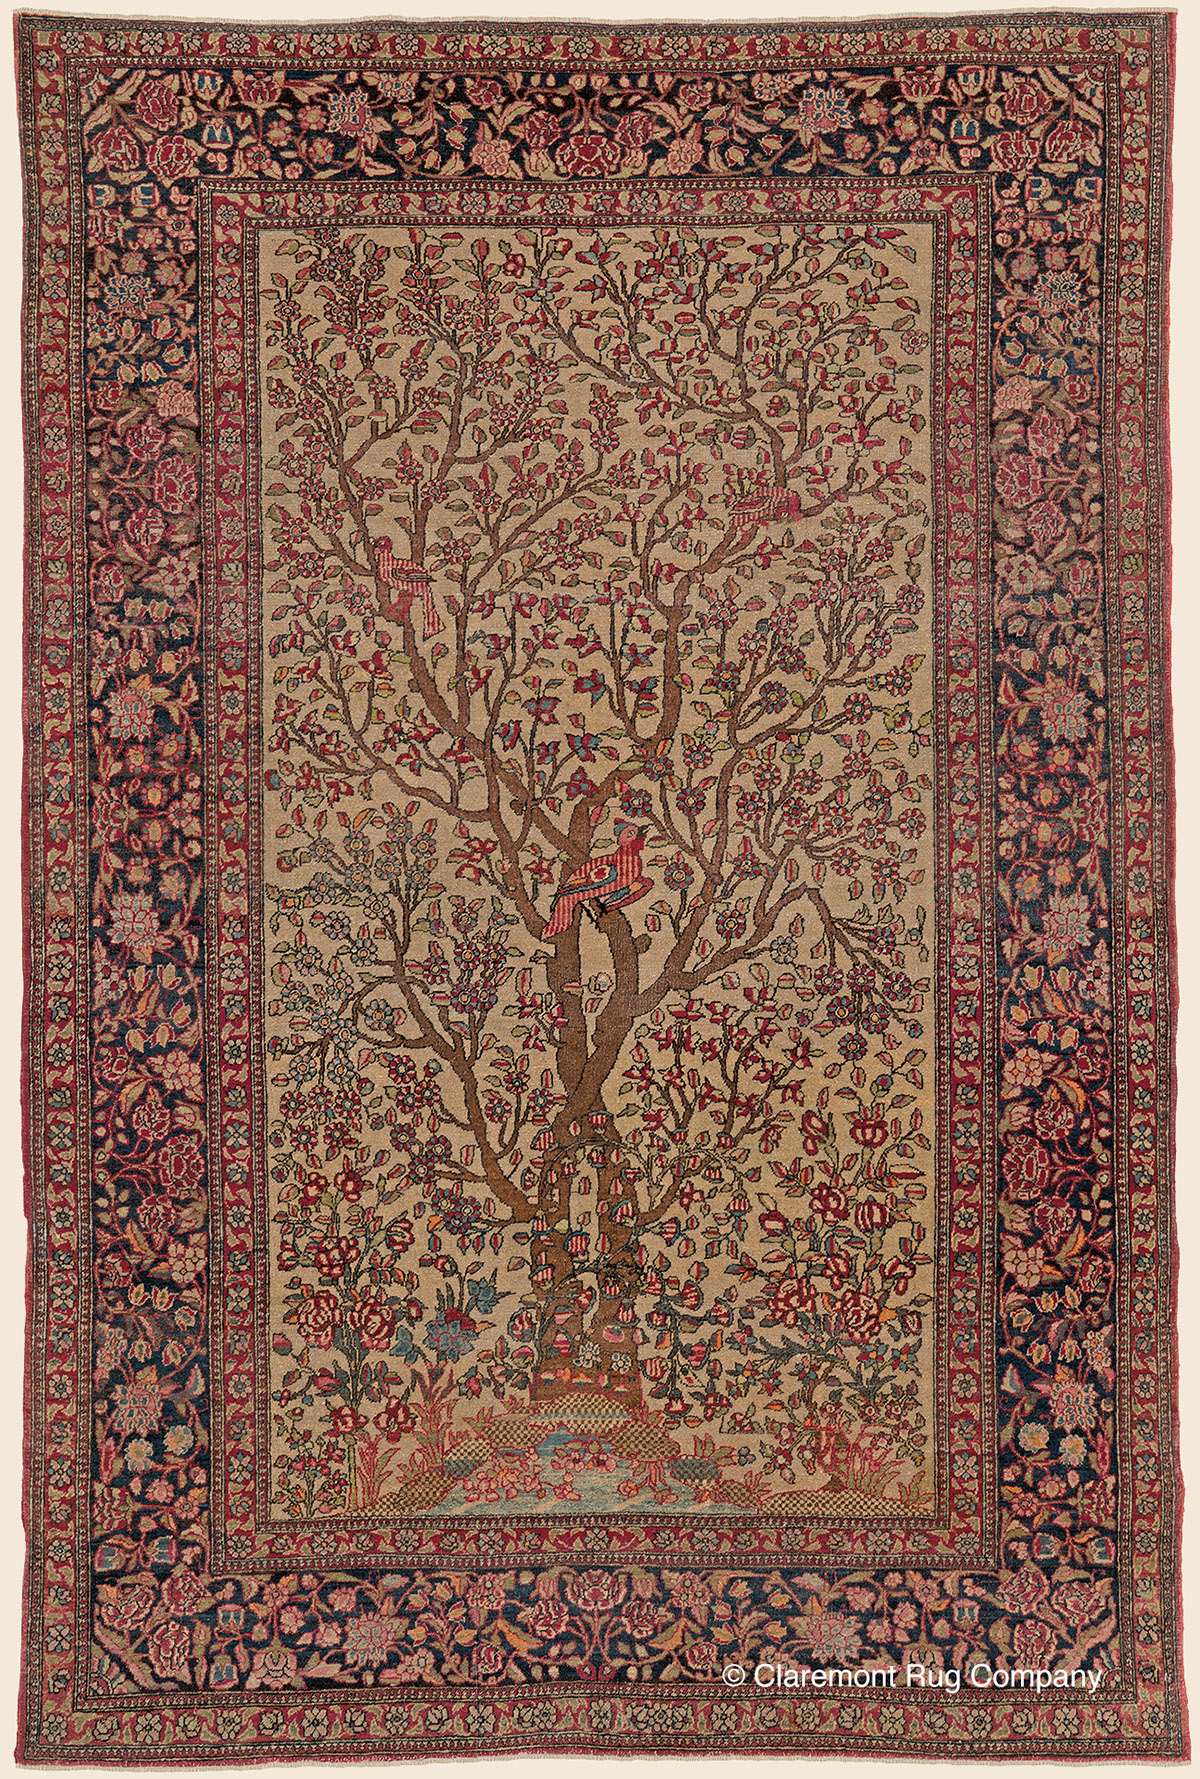 Isfahan Quot Tree Of Life Quot Central Persian Antique Rug